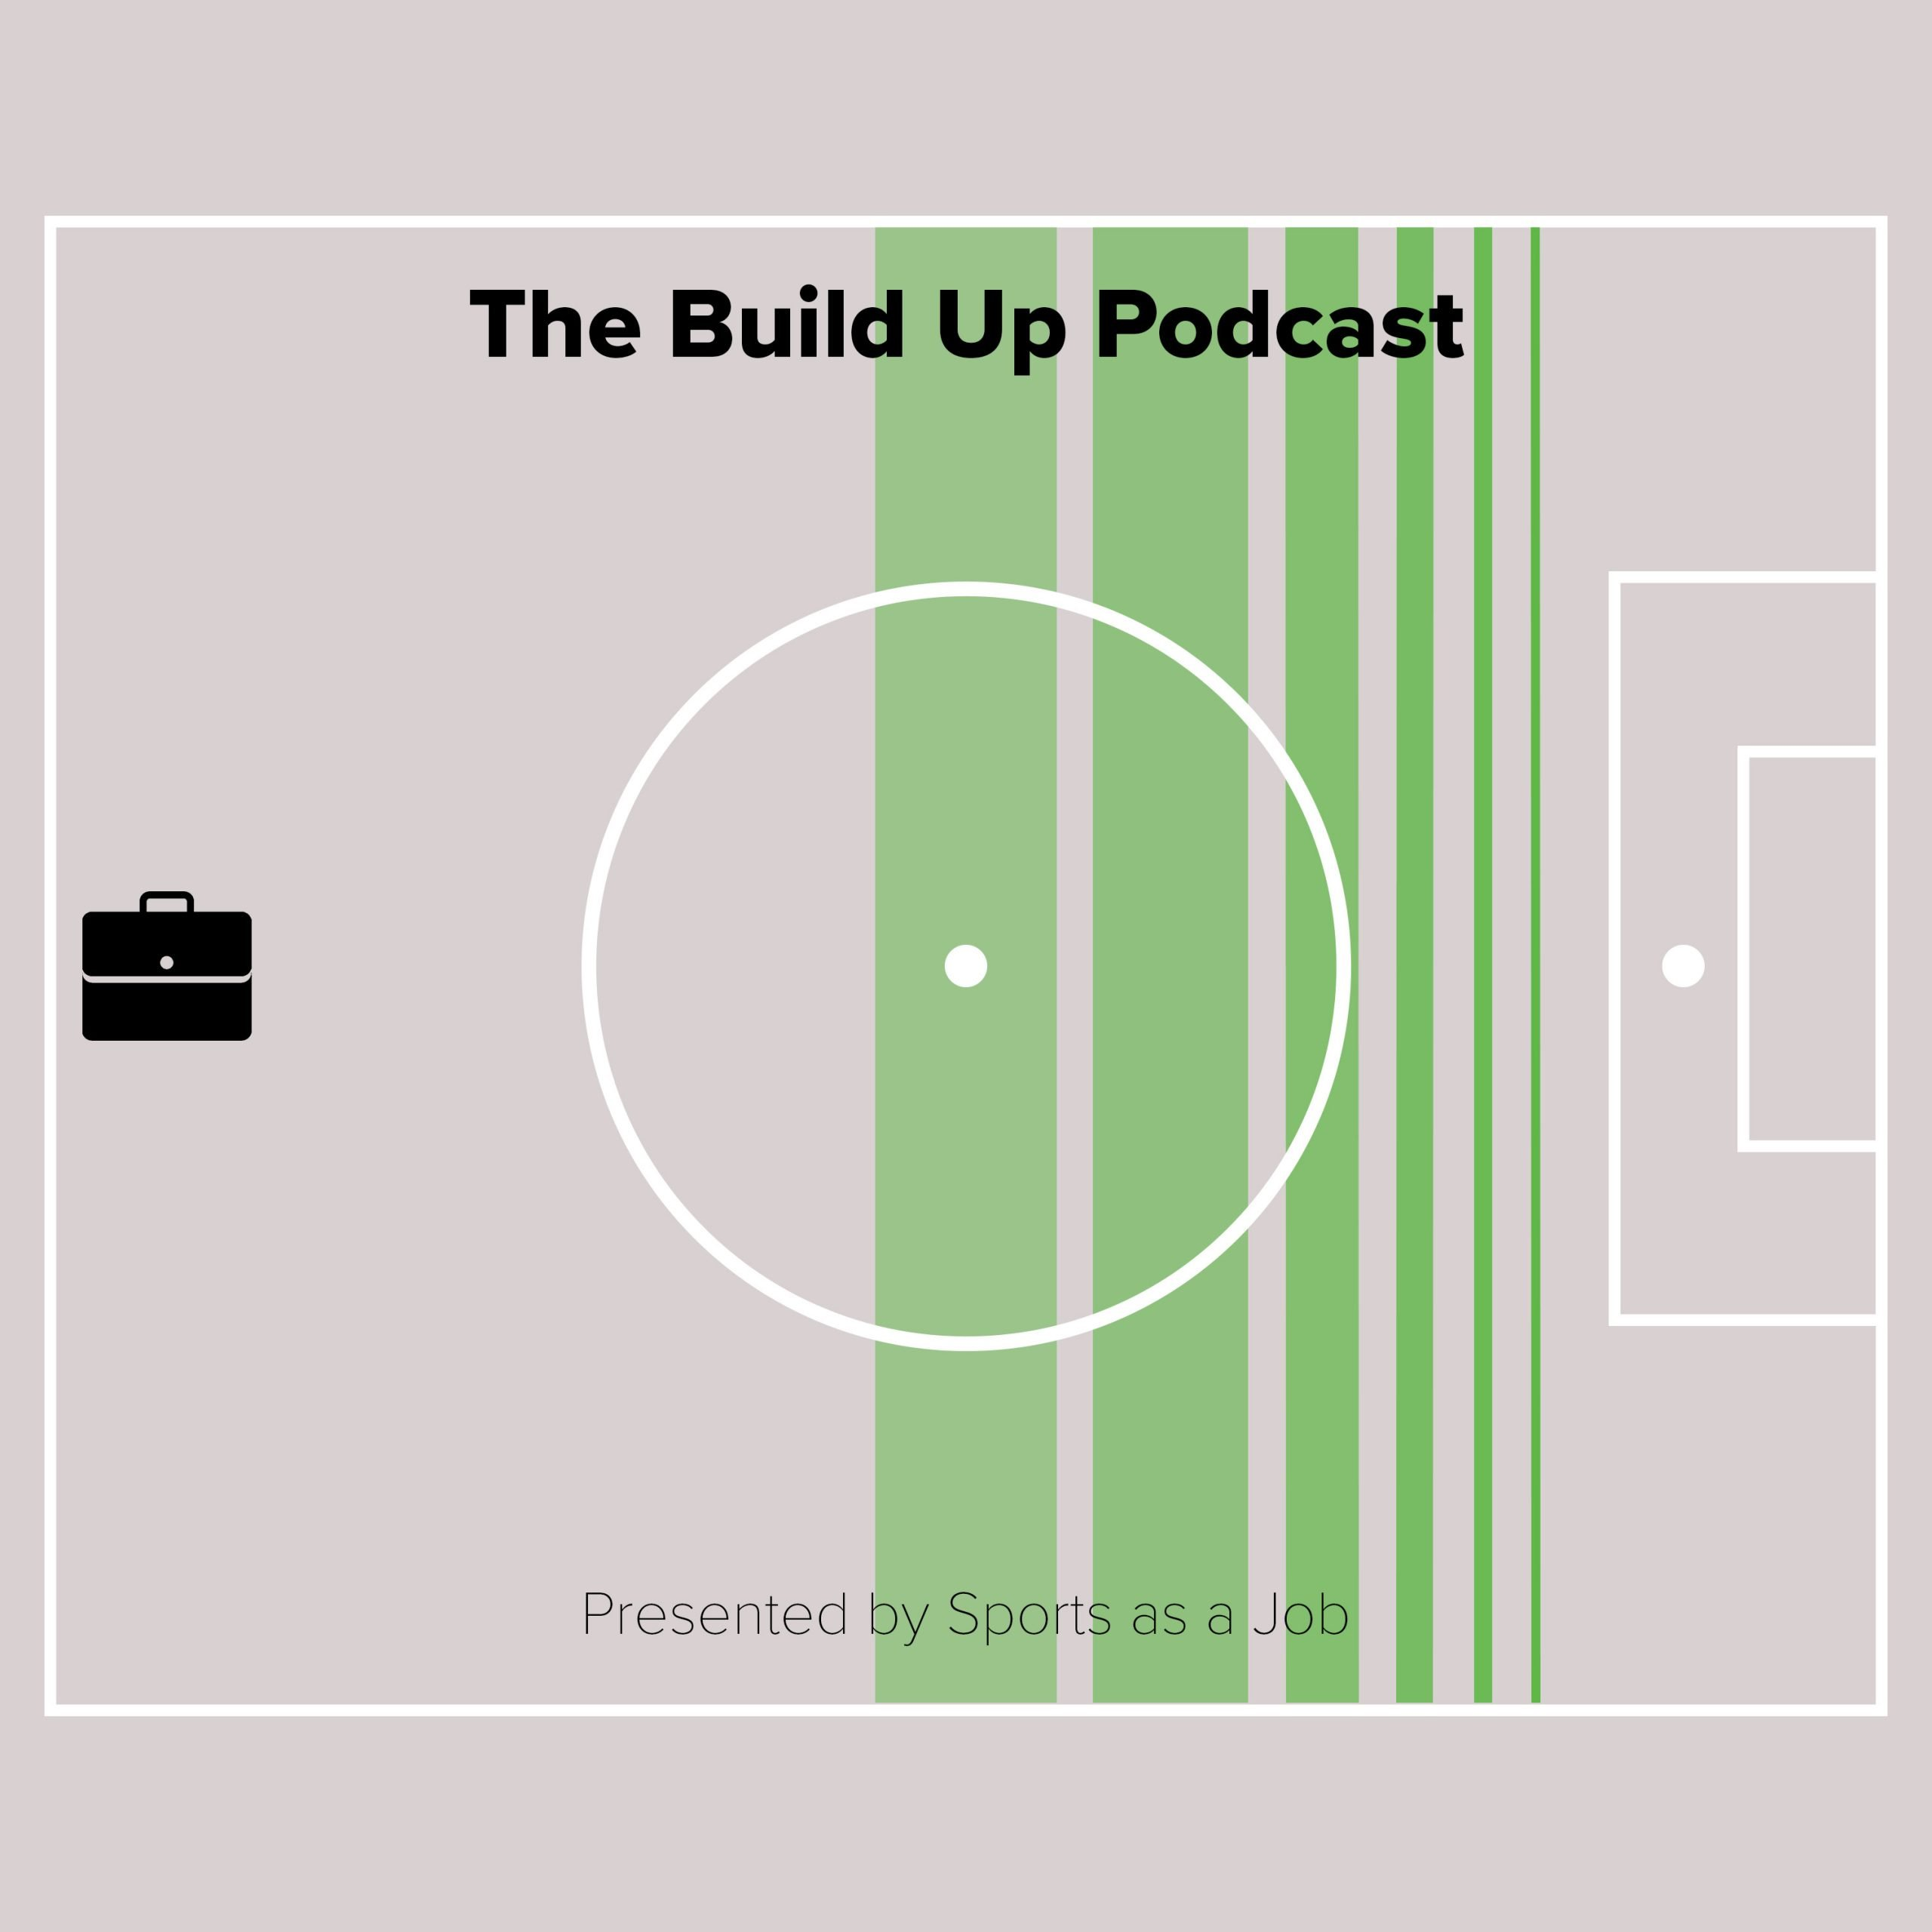 Kolby Castillo - Buld Up Podcast cover